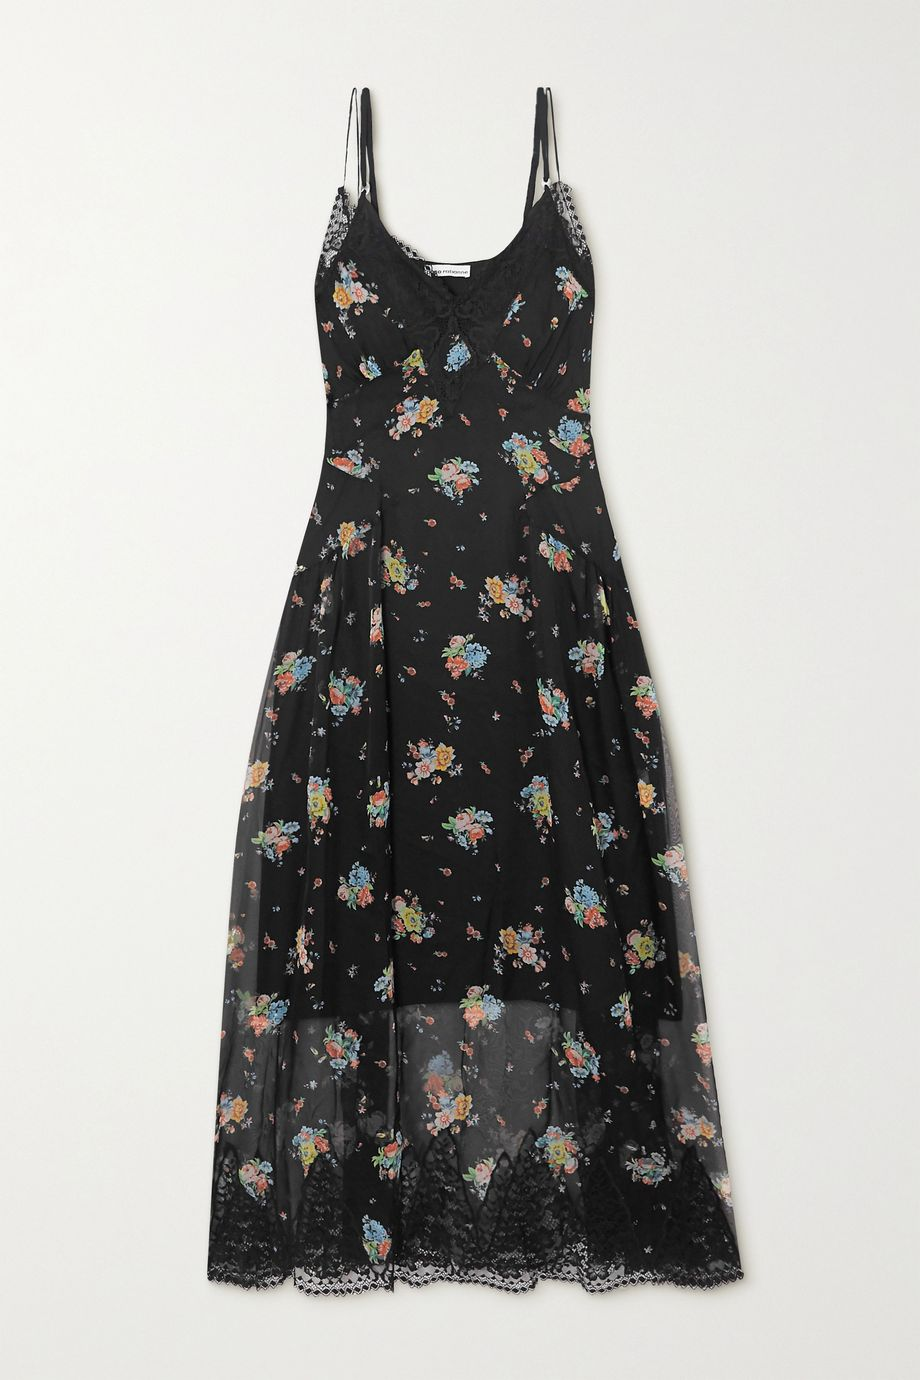 Paco Rabanne Lace-trimmed floral-print silk-chiffon dress